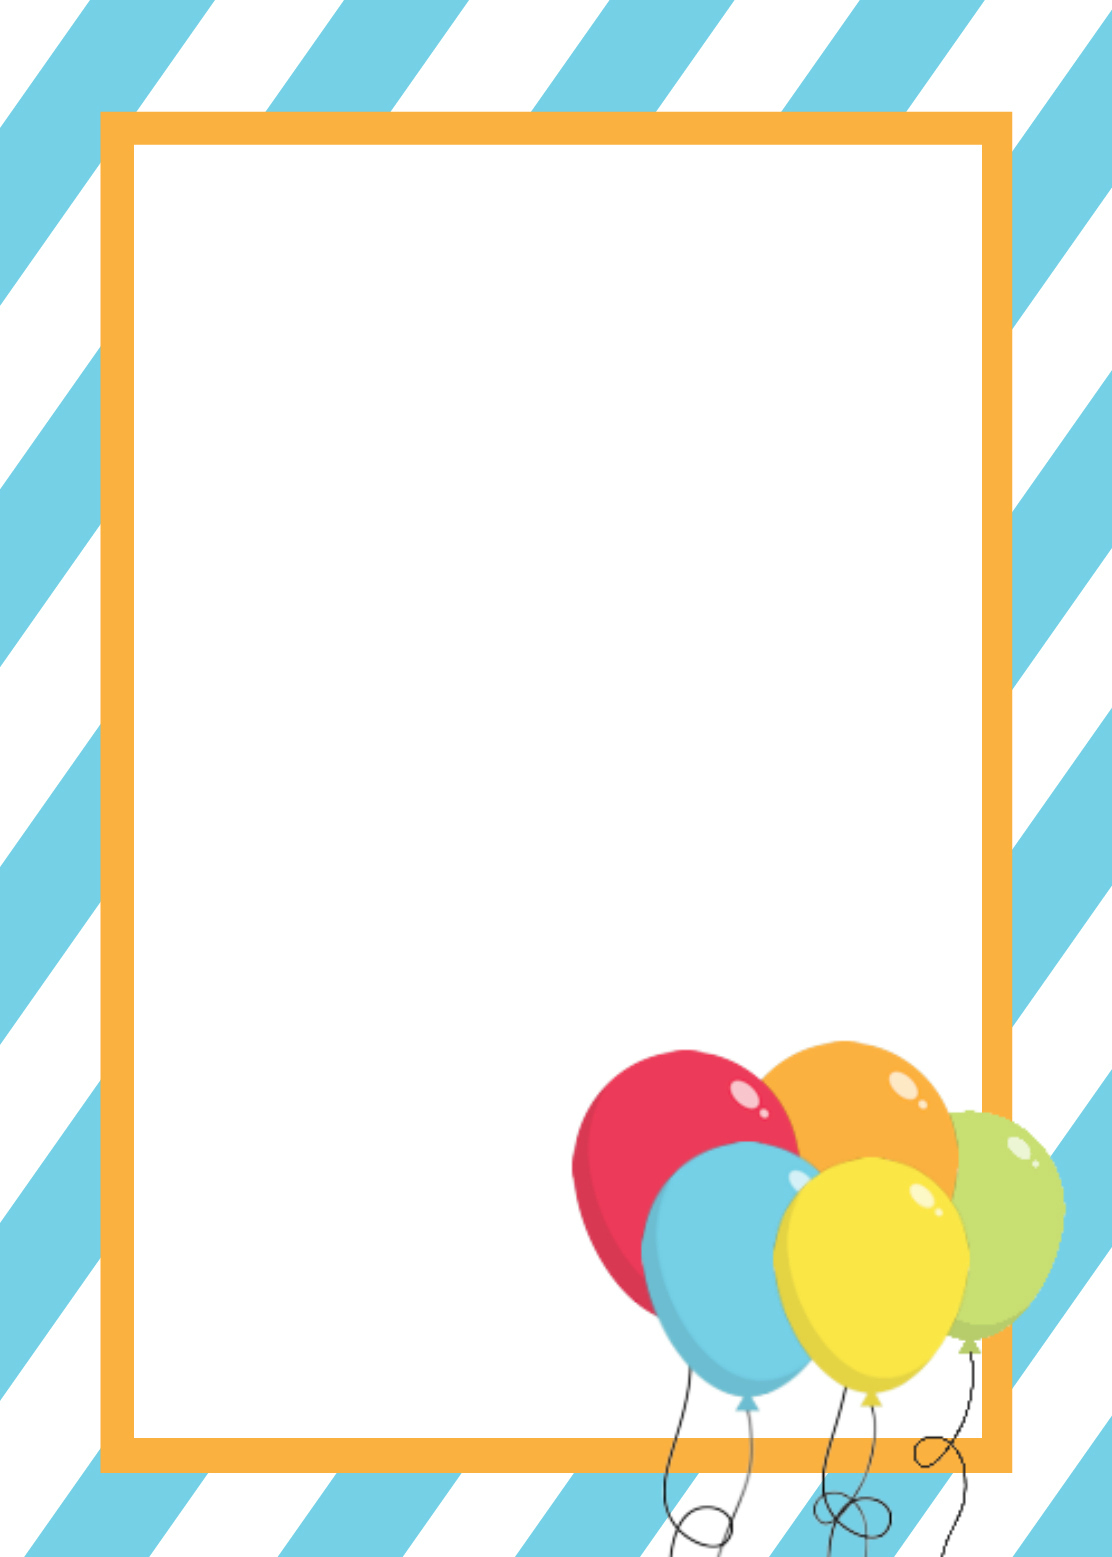 Free Printable Birthday Invitation Templates - Birthday invitations templates free printable